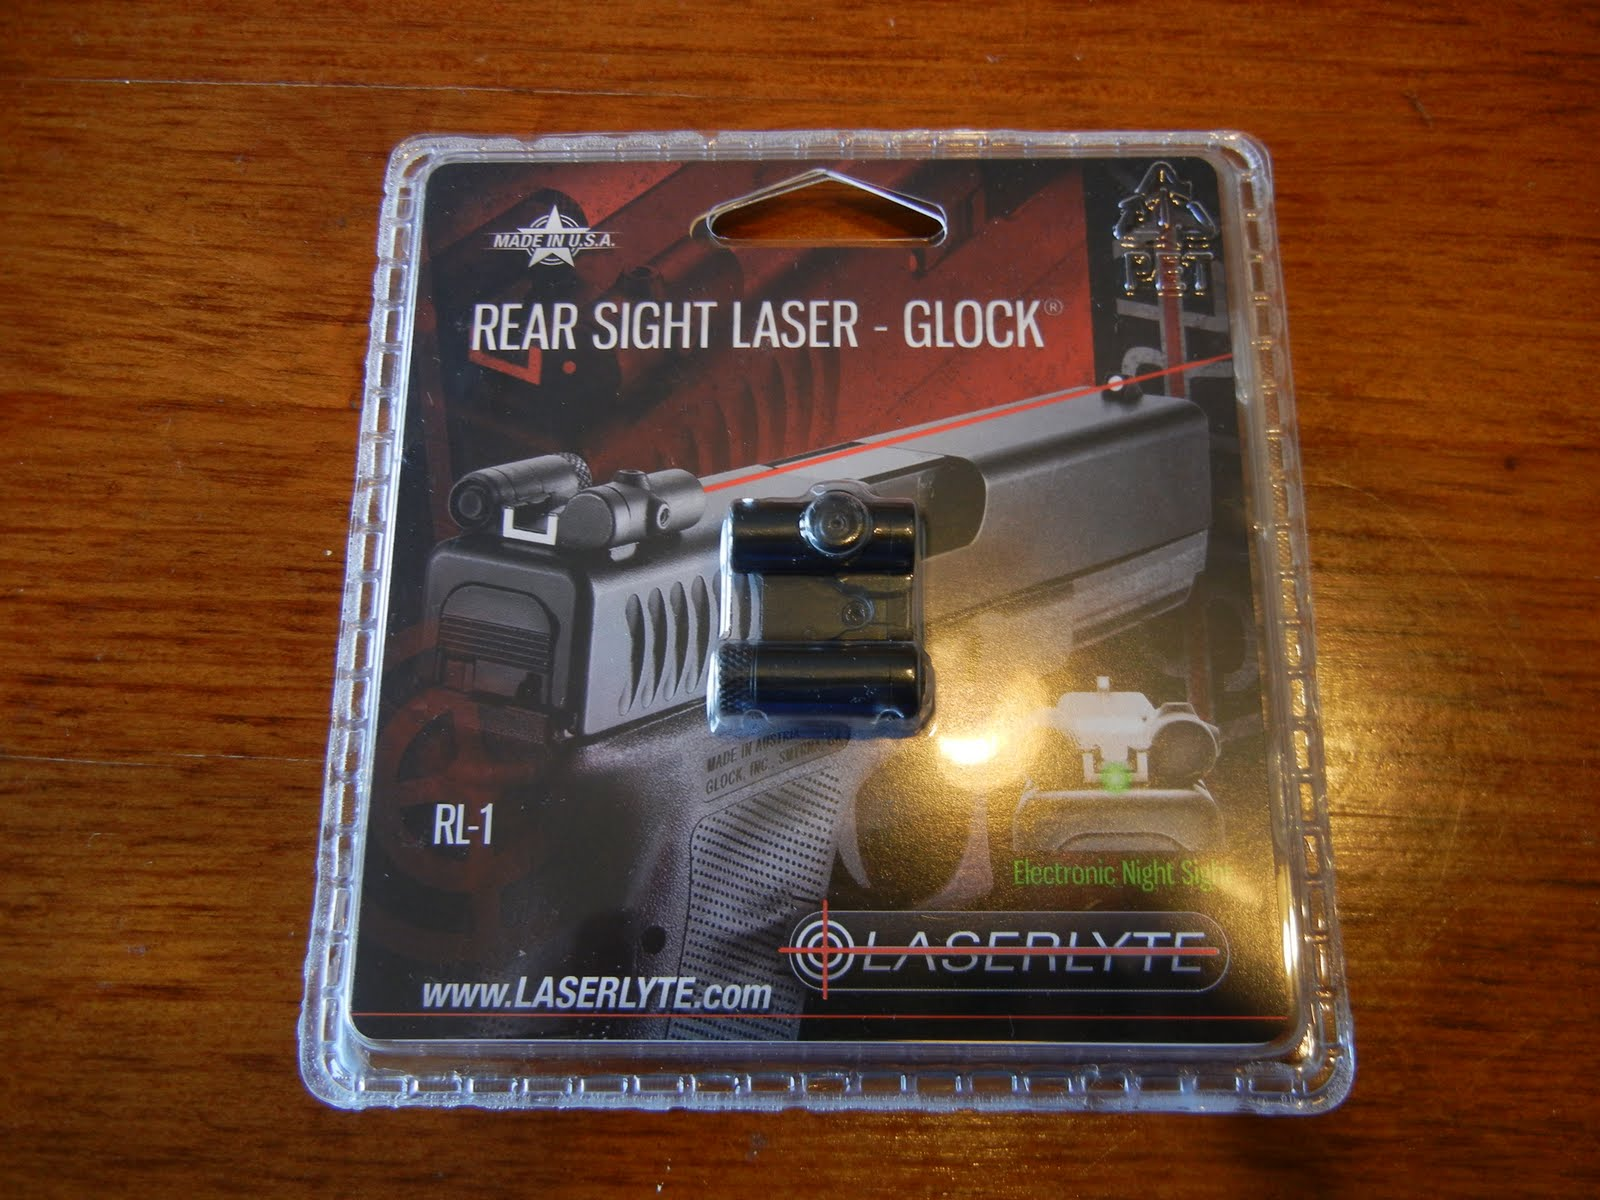 Review: LaserLyte RSL Rear Sight Laser for Glock - Laura Burgess